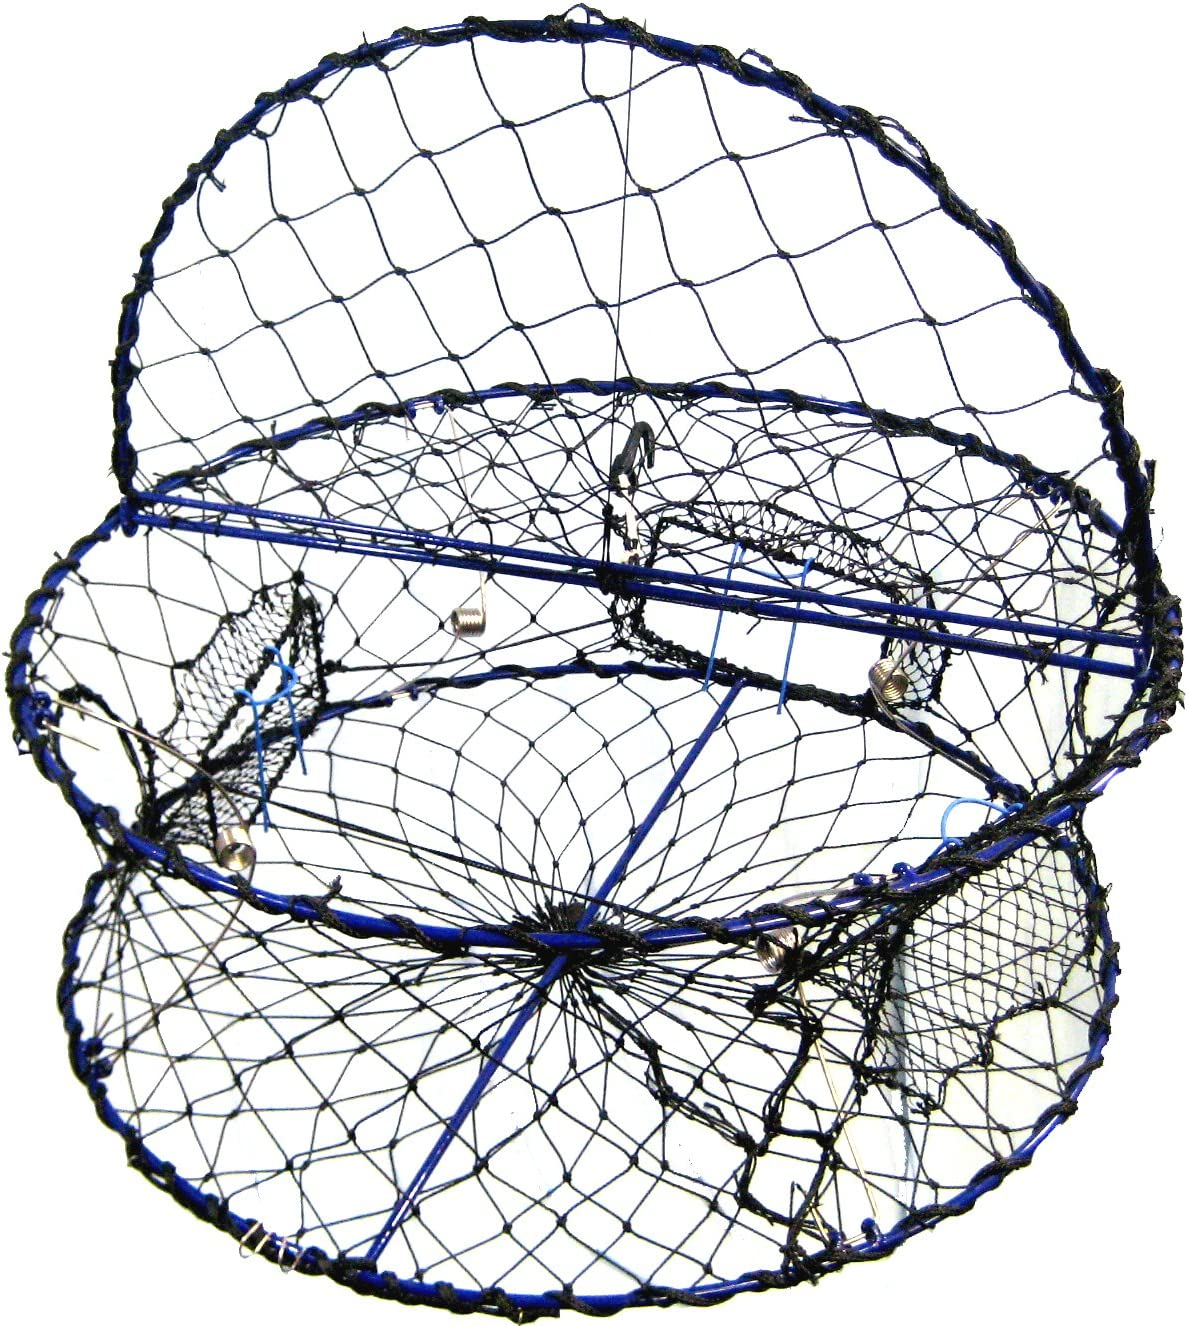 """Amazon.com : Promar Heavy Duty Collapsible Crab Pot, 32"""" x 12"""" Poly with  Hinged Tending Door - Alaska Legal : Fishing Bait Traps : Sports & Outdoors"""